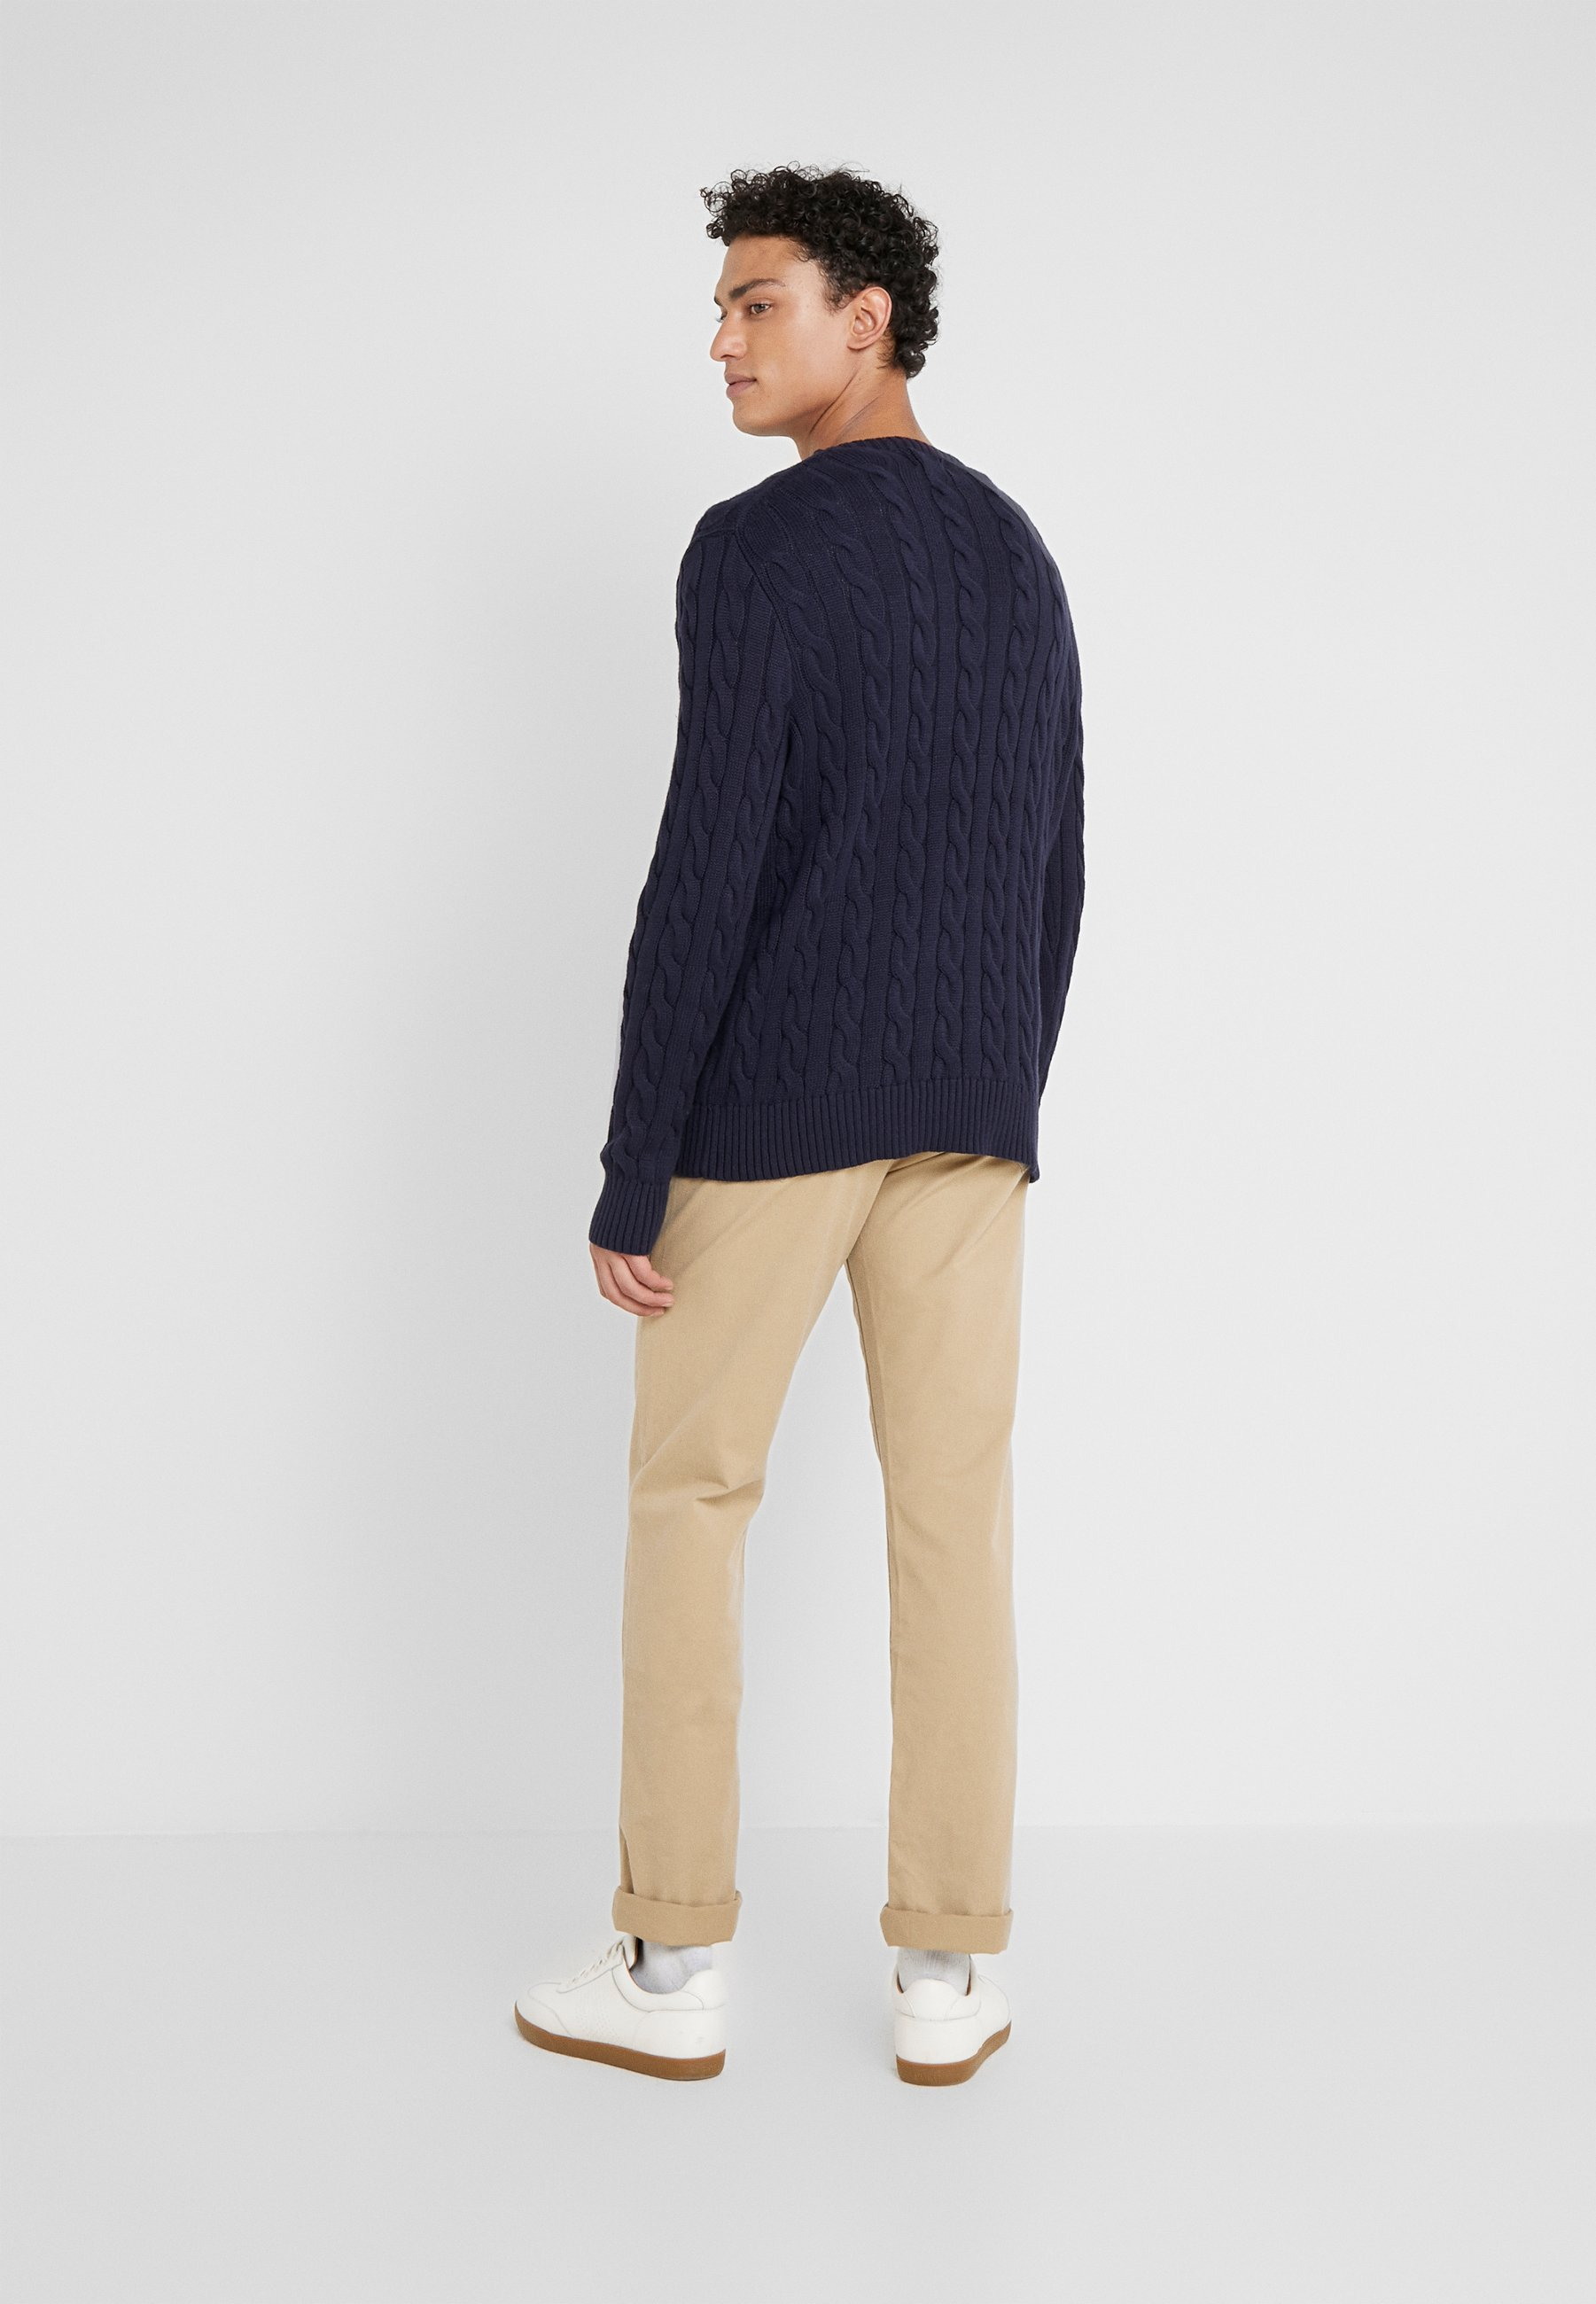 Polo Ralph Lauren CABLE - Strickpullover hunter navy